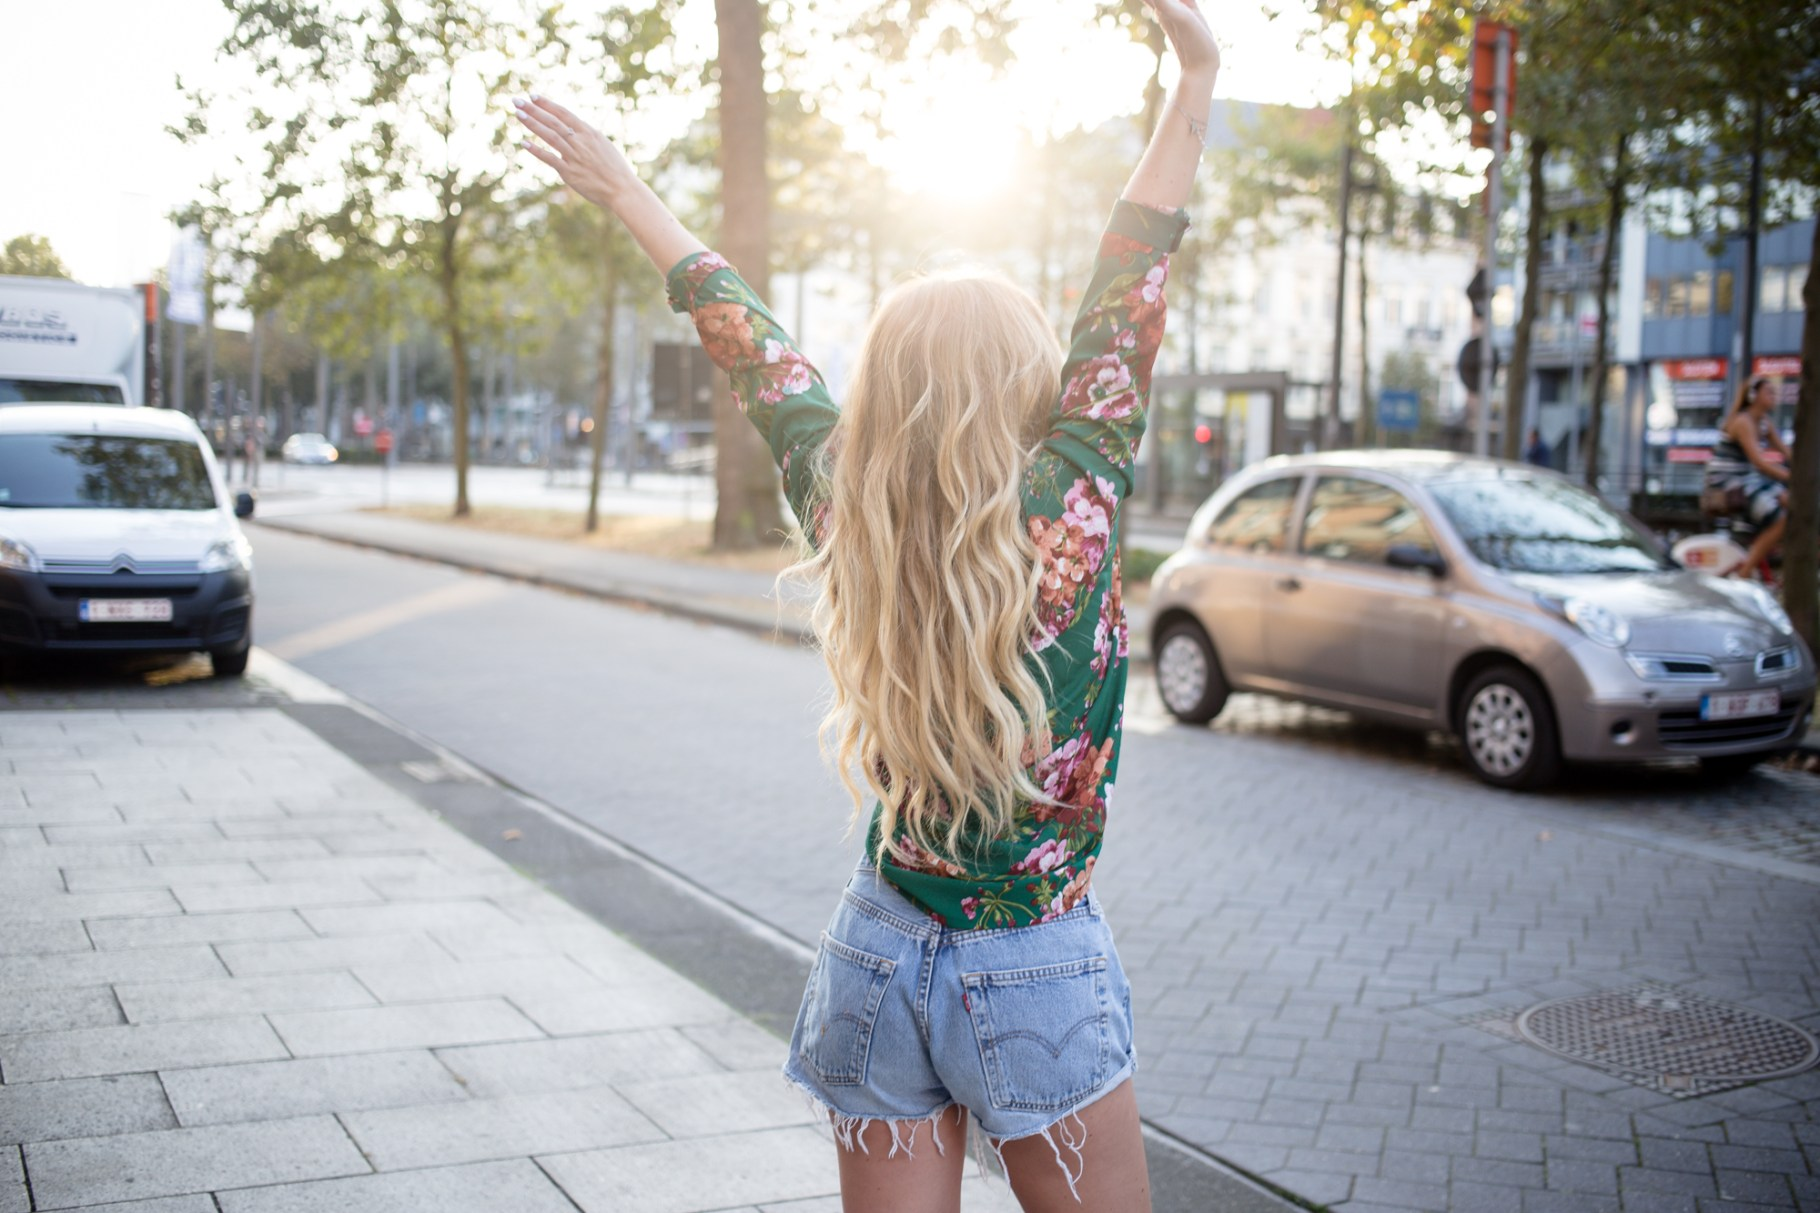 Gucci-inspired Floral Top + Vintage Levi's